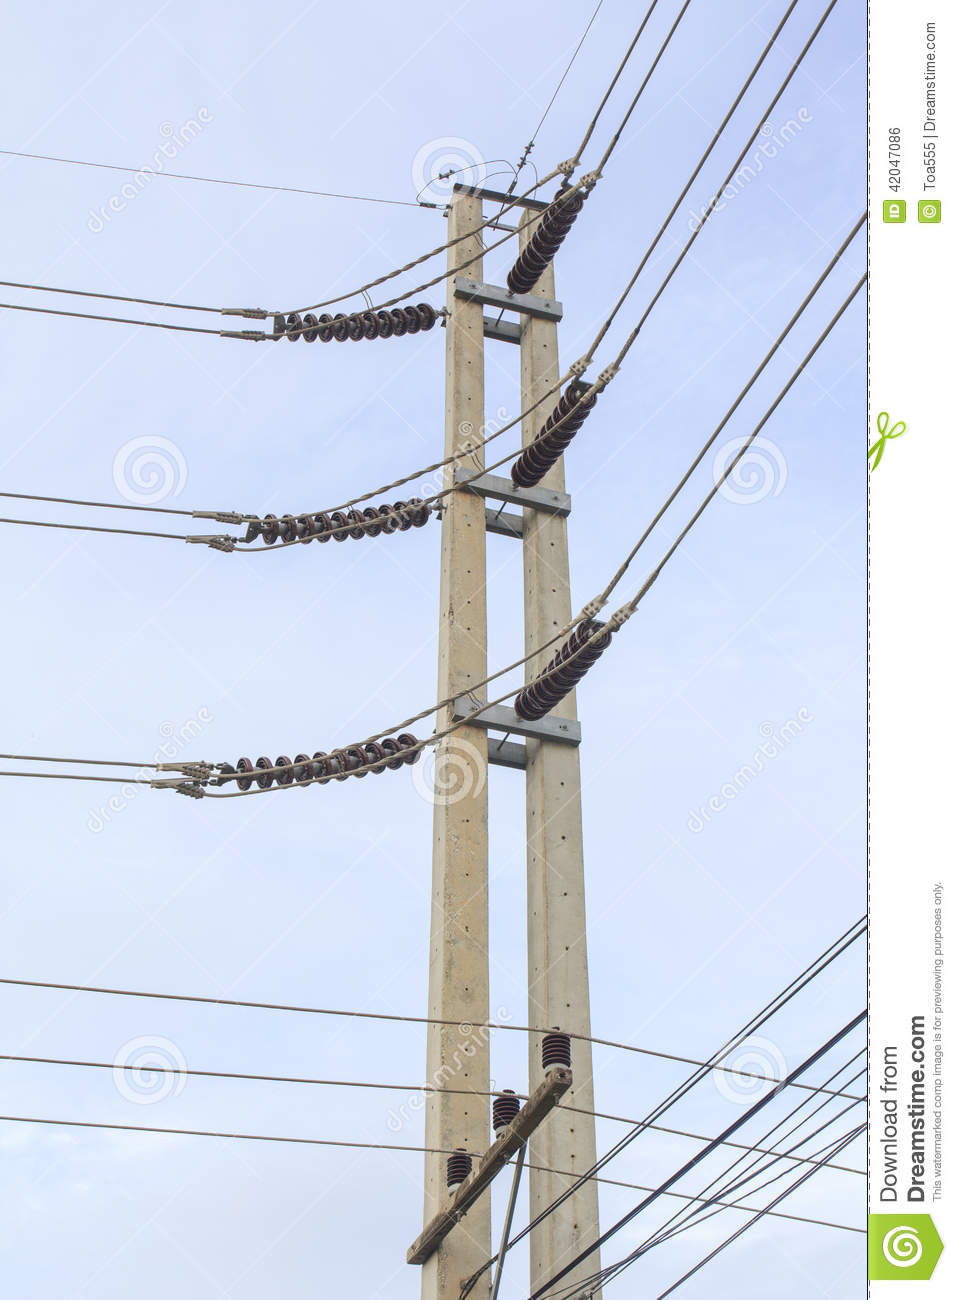 Electrical Concrete Pole At Corner Stock Photo - Image of